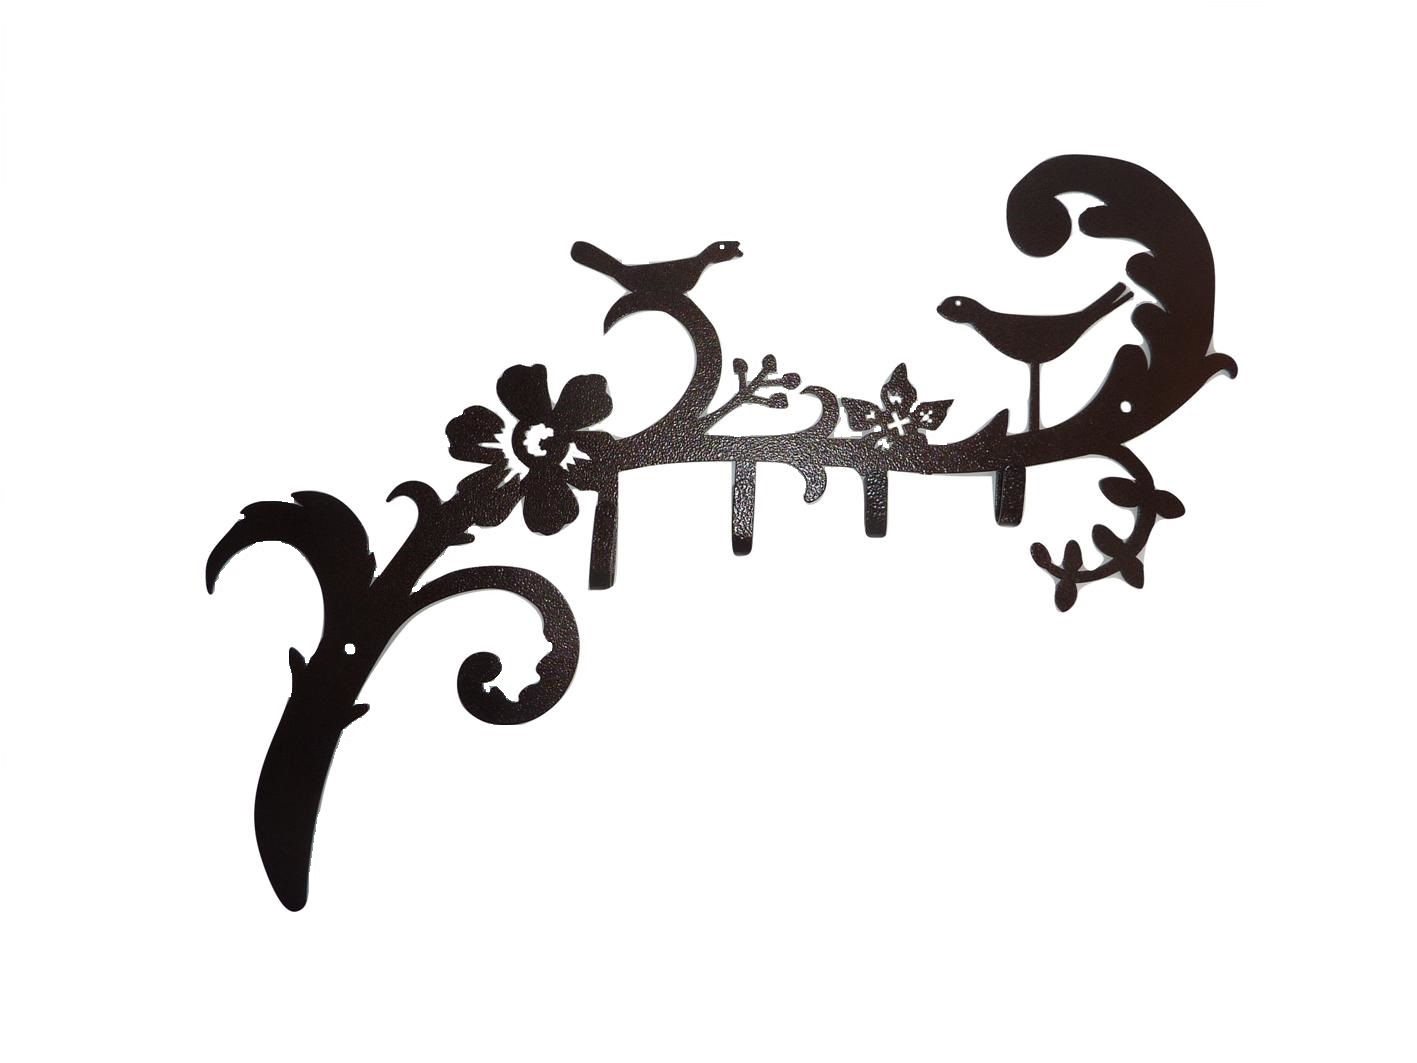 Image of a coat hook featuring two birds on a leafy branch